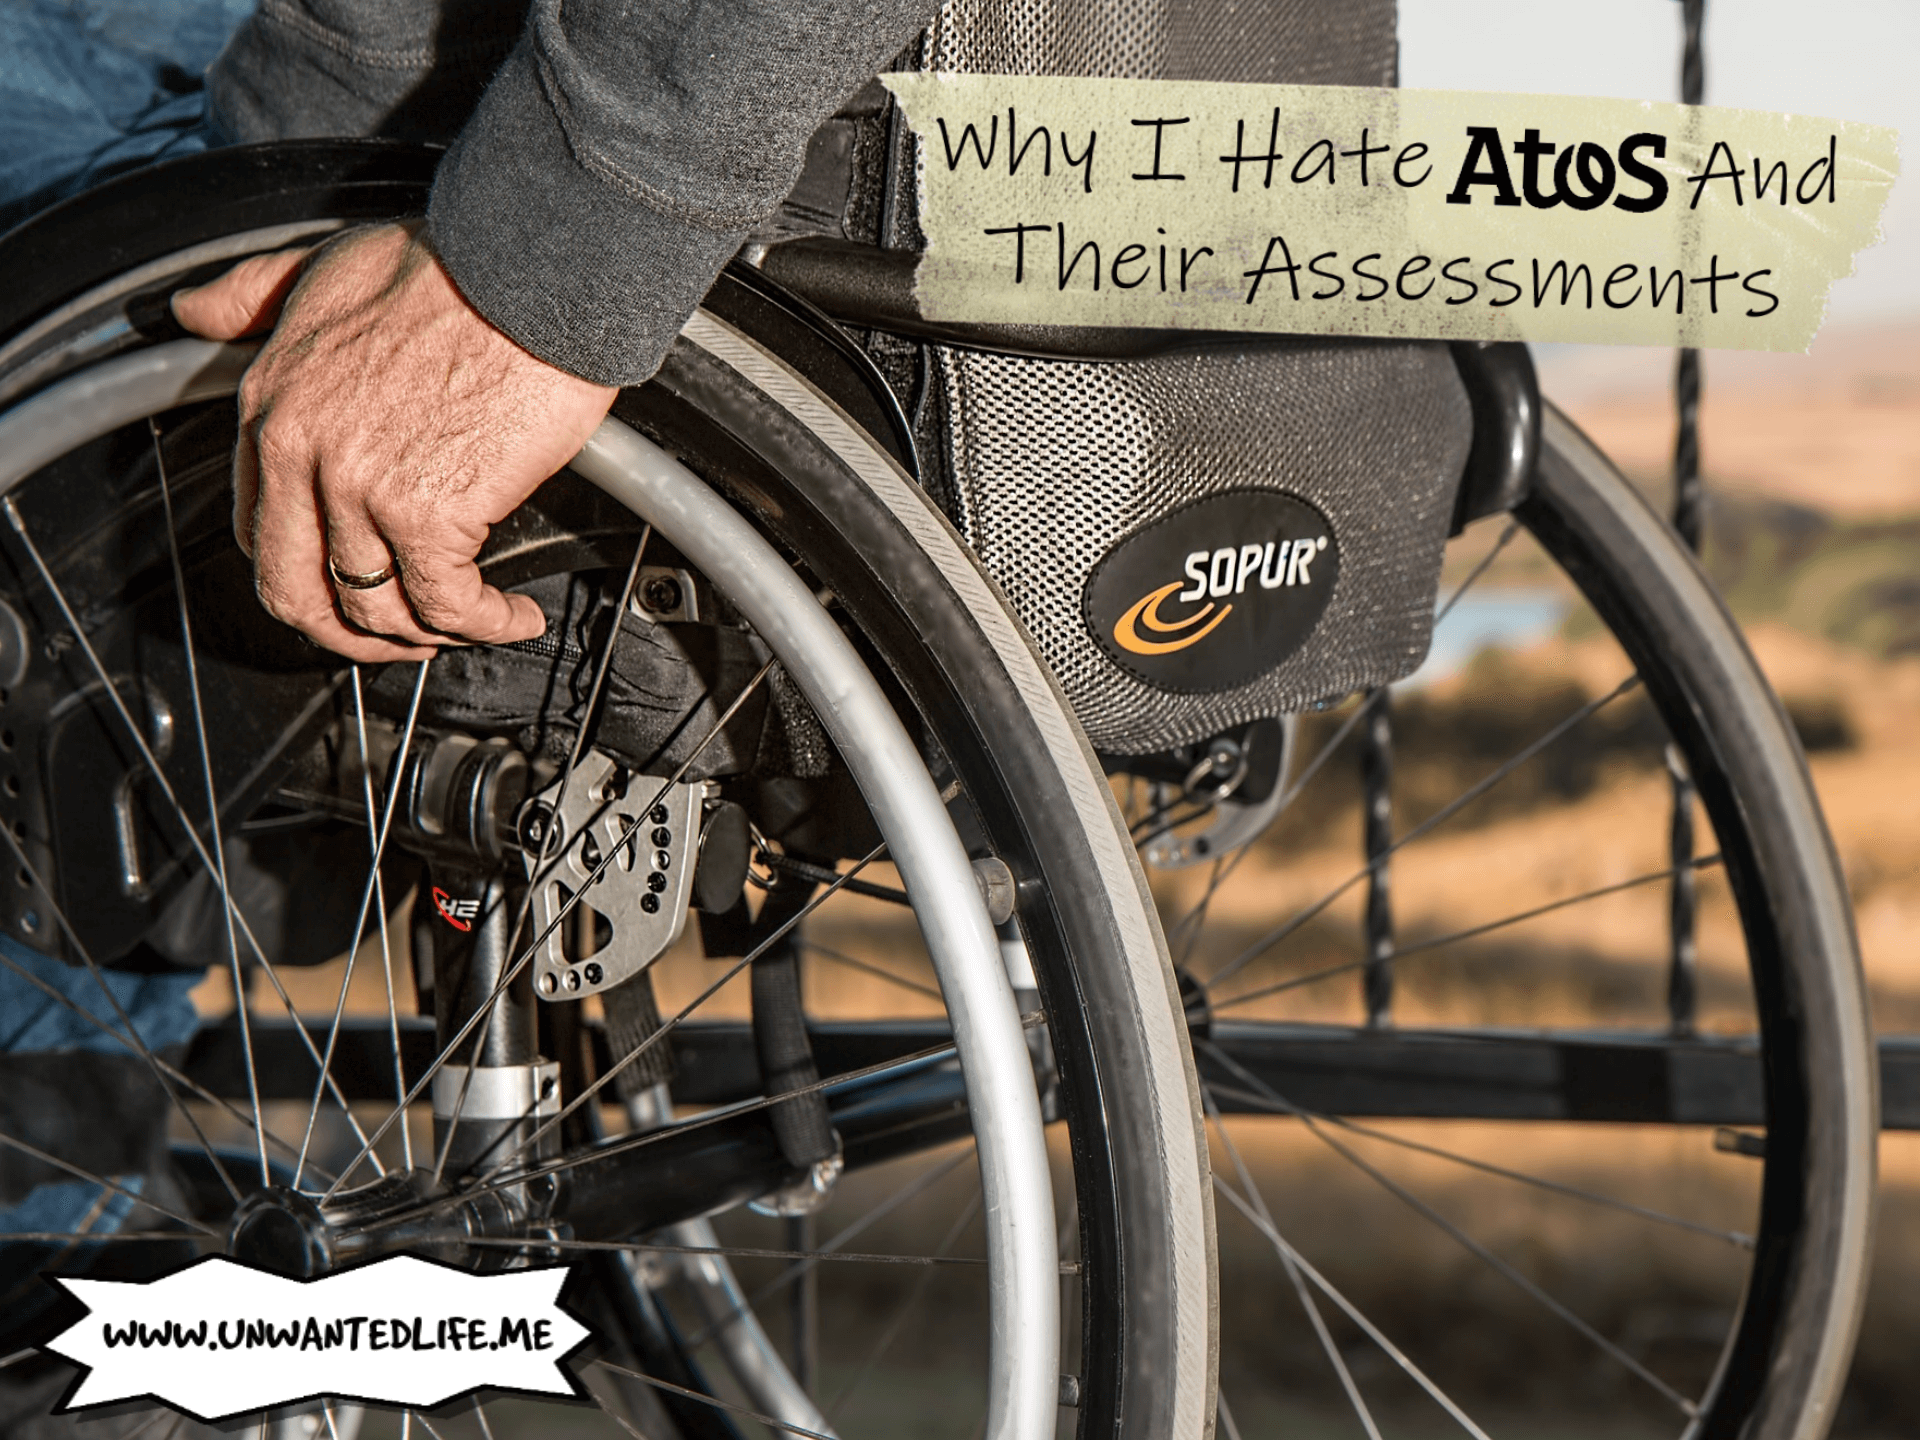 A closeup photo from behind of a white man in a wheelchair with the article title - Why I Hate Atos And Their Assessments - in the top right corner